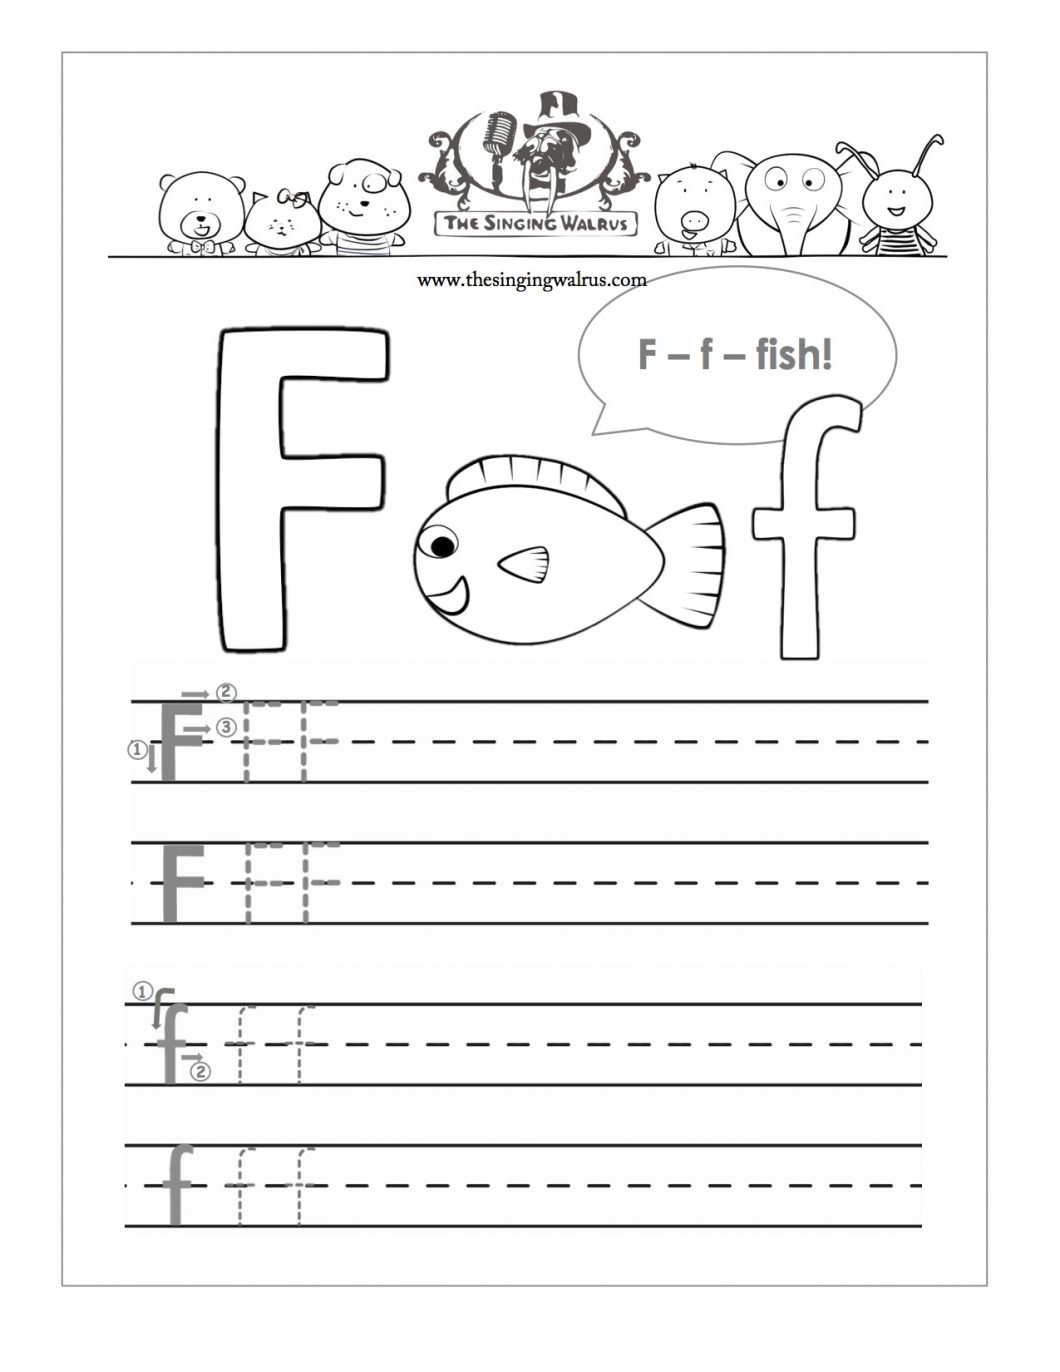 Kindergarten Letter Worksheets – With Free 4Th Grade Math Also Abc - Free Printable Alphabet Worksheets For Kindergarten